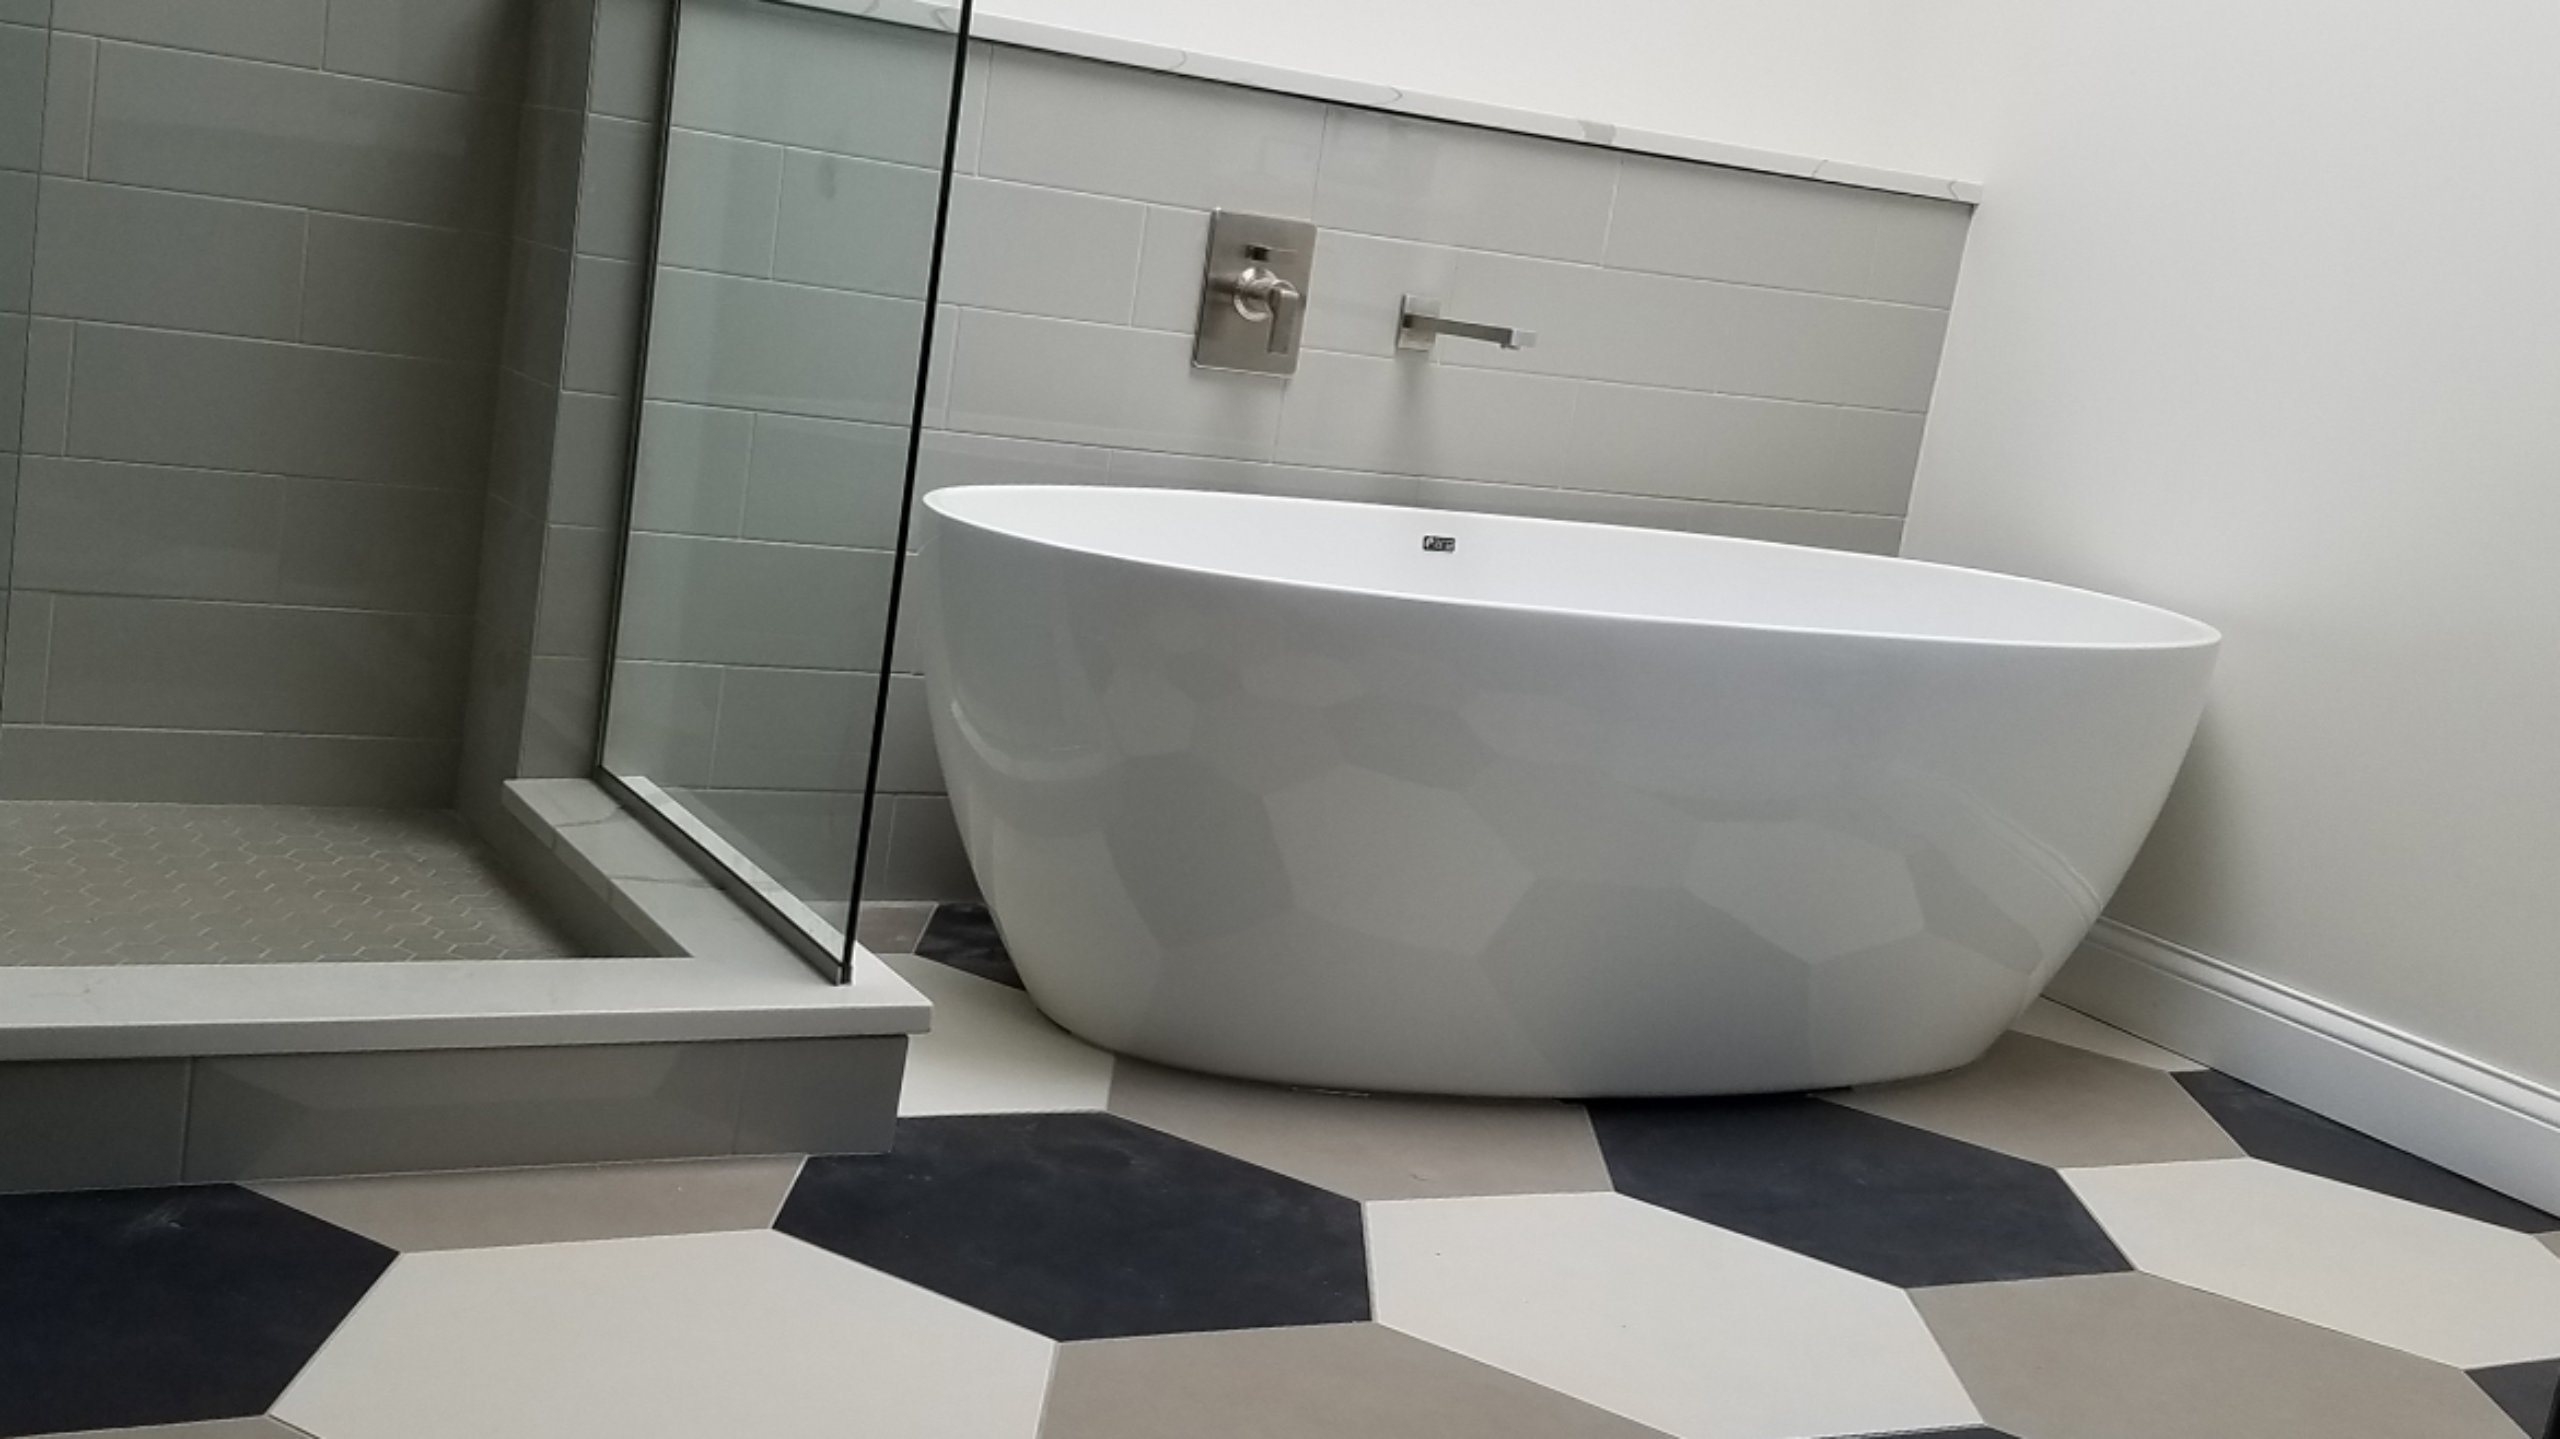 Chicago Bucktown Rowhouse Master Bathroom Freestanding Tub Remodel